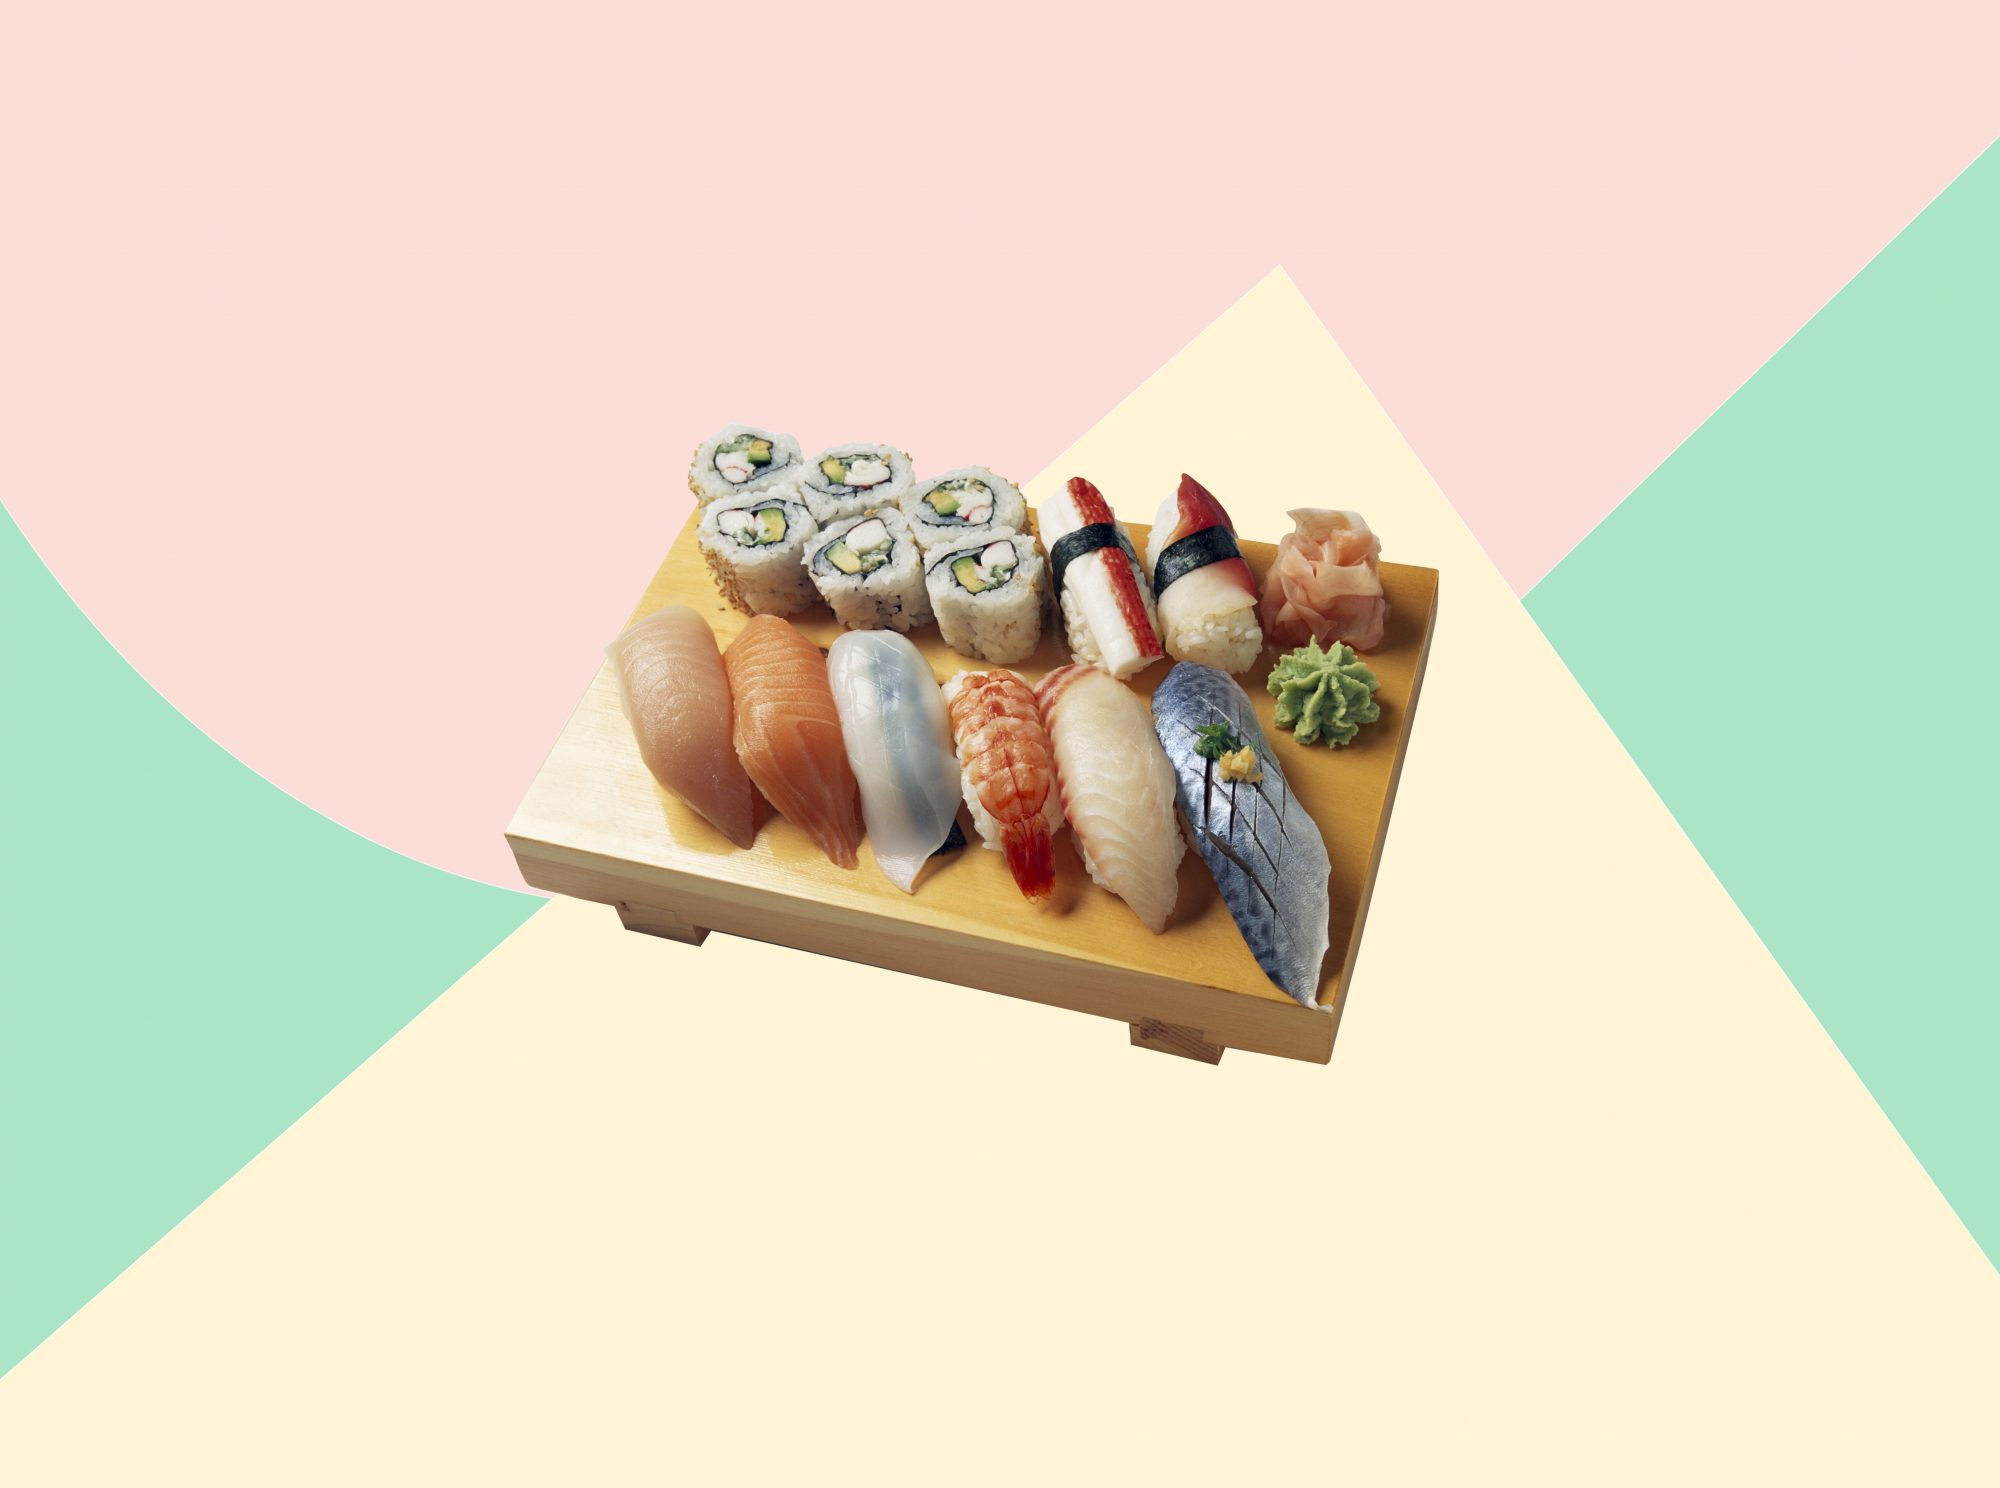 How to Eat Sushi: The Proper Way to Eat Sushi | Real Simple